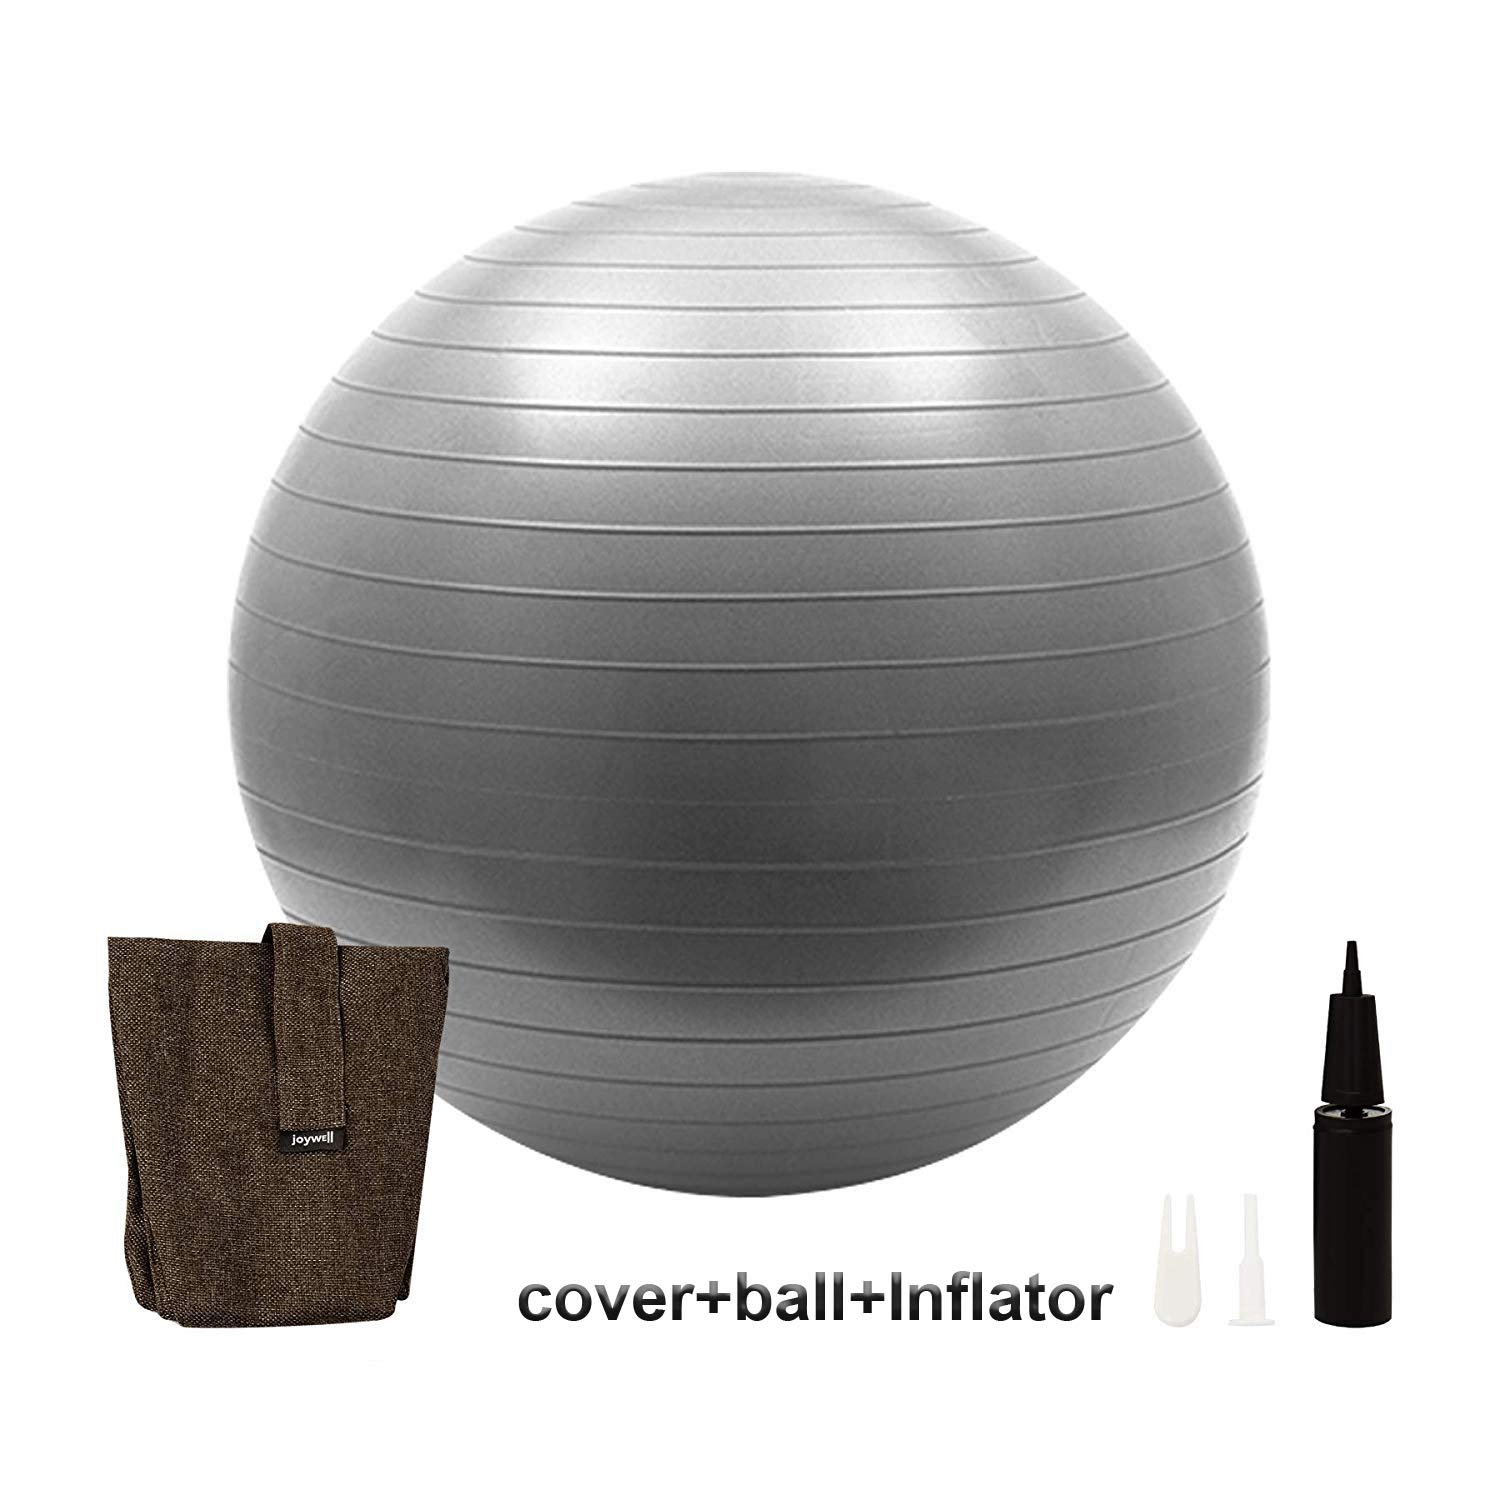 Joywell -Sitting Ball Chair with Handle for Home, Office, Pilates, Yoga, Stability and Fitness - Includes Exercise Ball with Pump Multifunction Foldable Storage Bag Laundry Hamper (65CM,Chocolate)